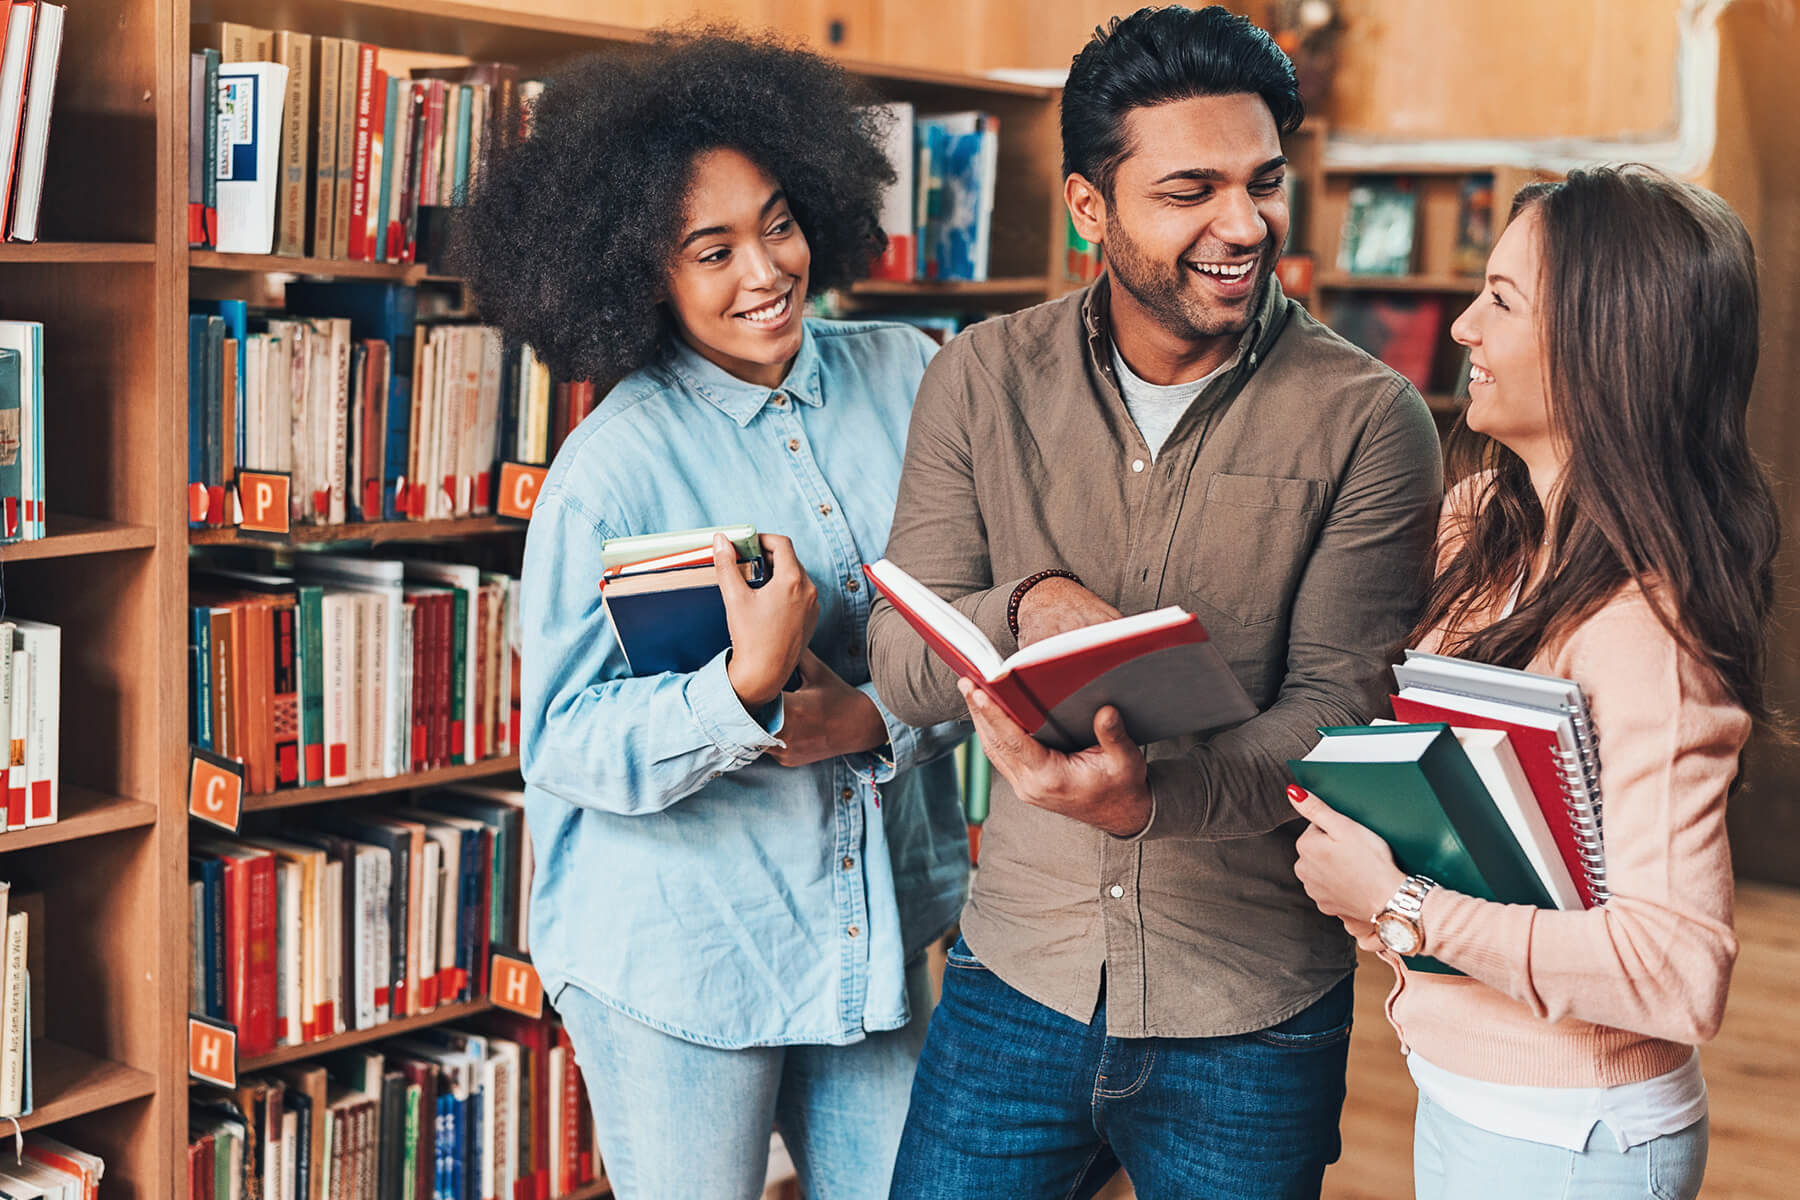 Three college students talk in a library while holding books